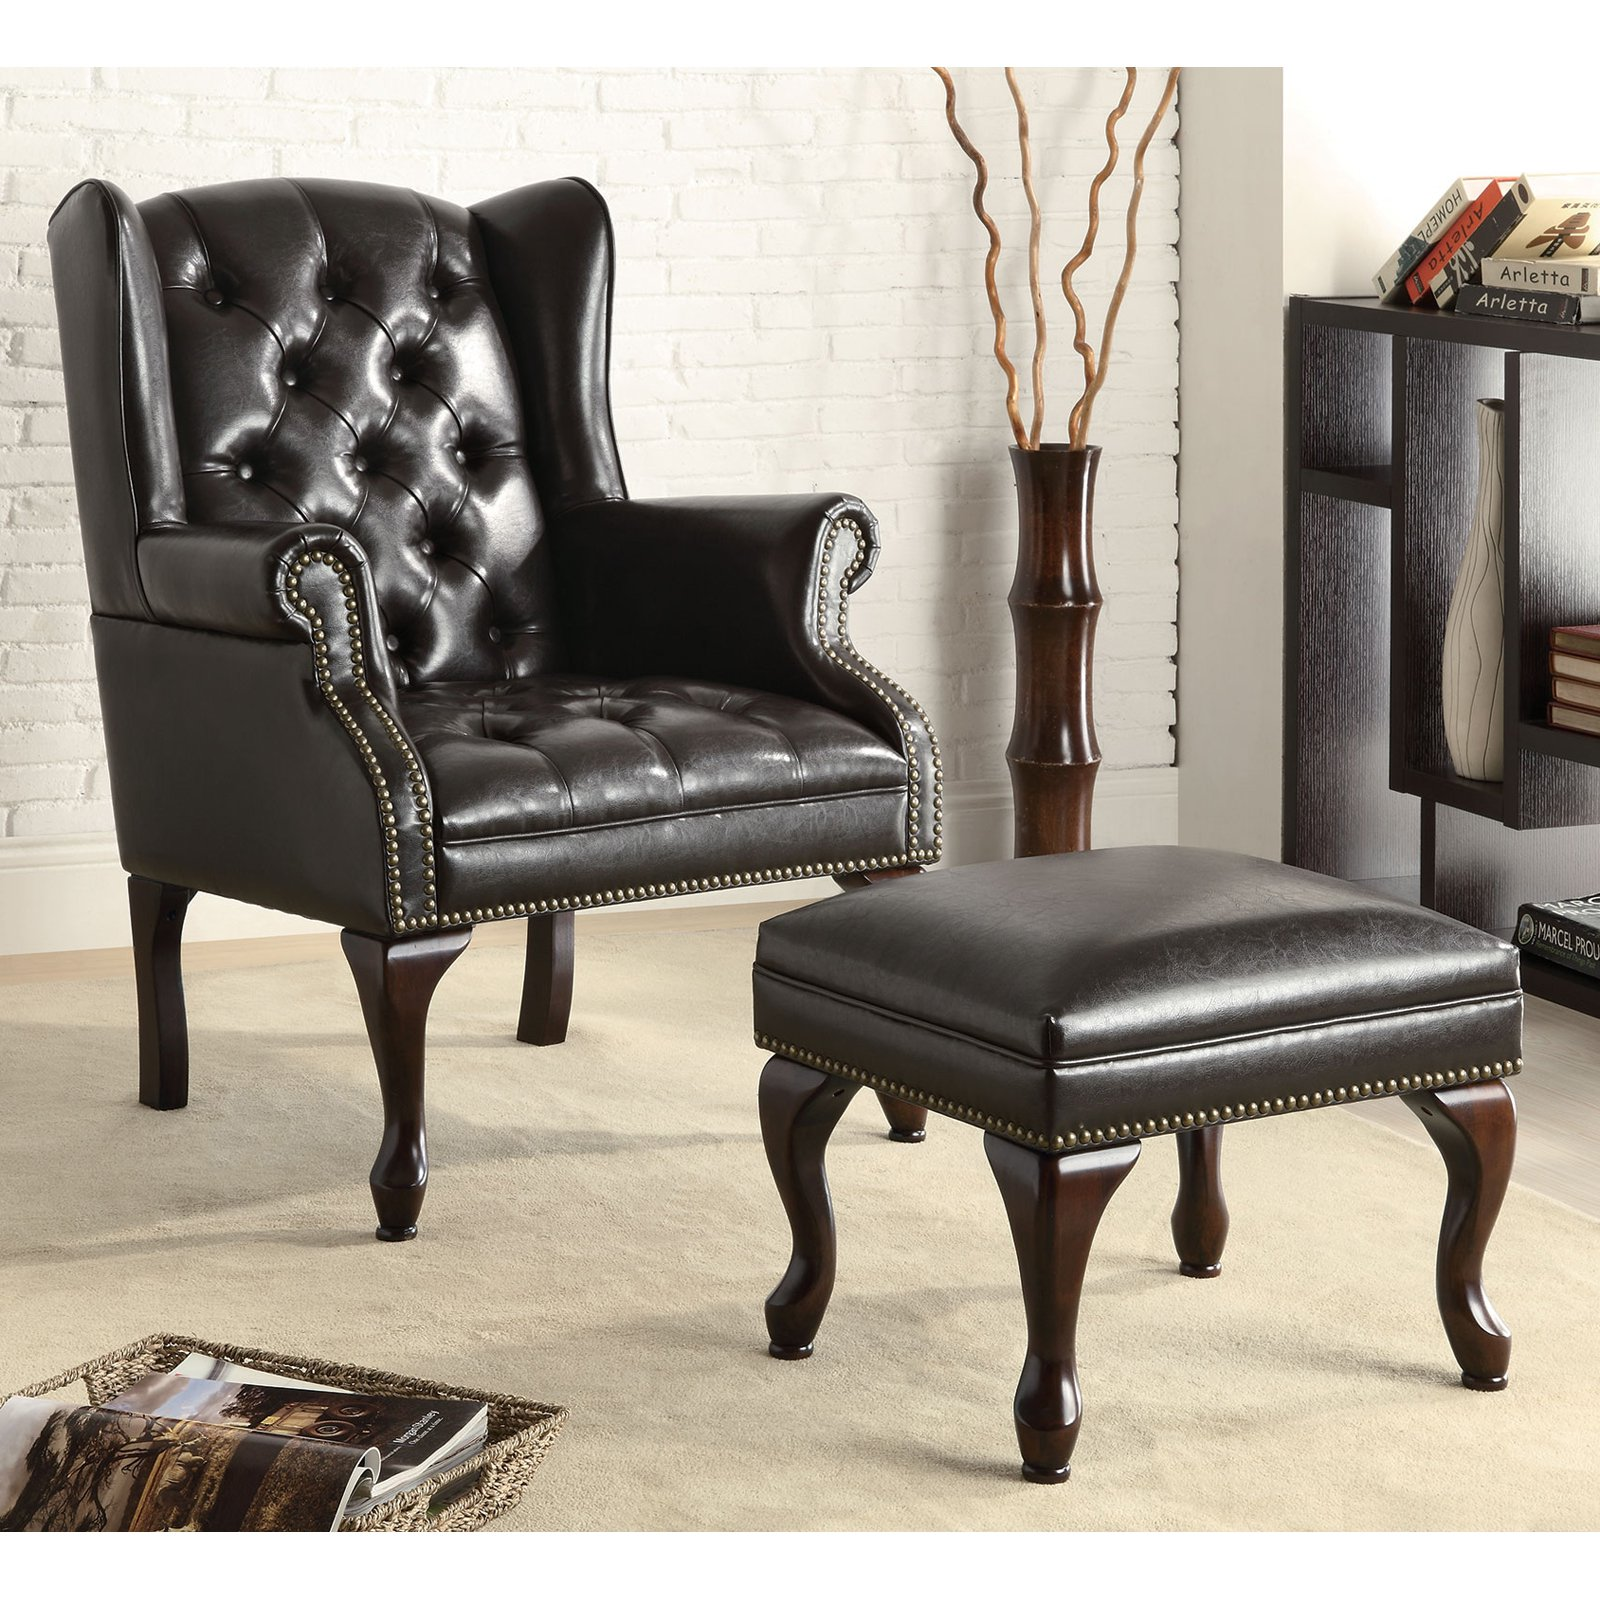 Traditional Wing Back Chair/Ottoman, Black